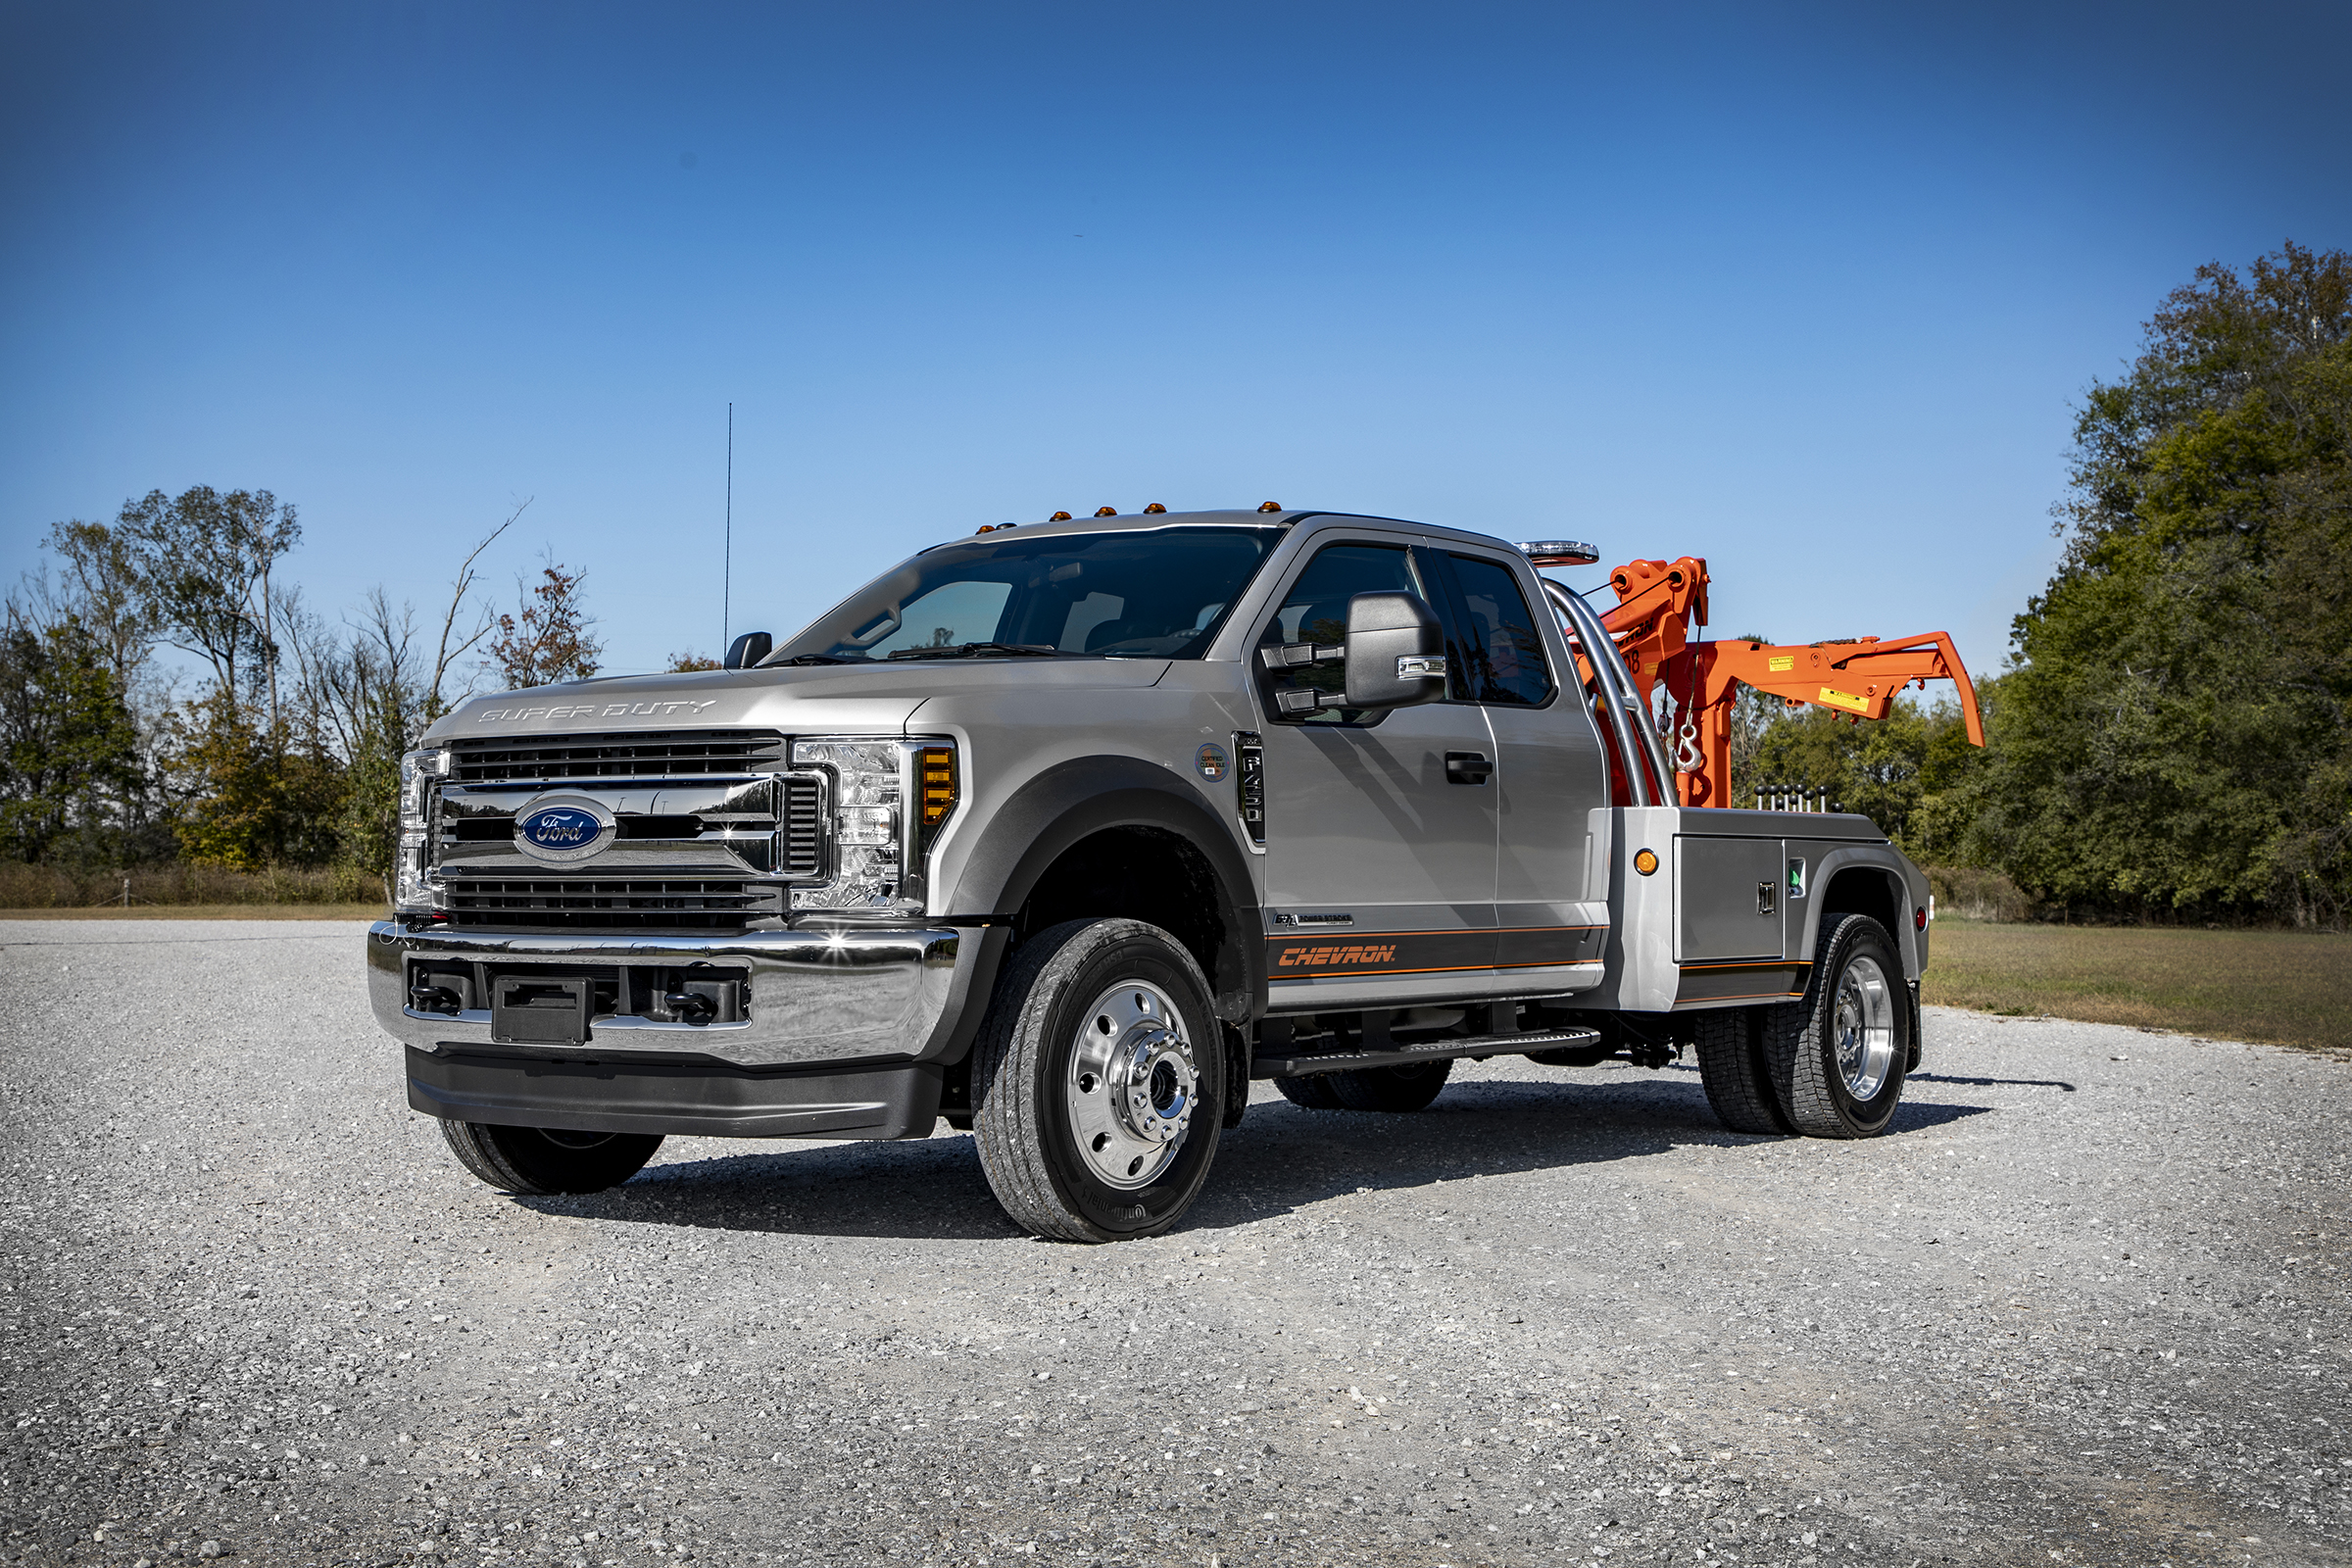 Chevron™ 408 Light-Duty Autoloader can be installed on multiple truck chassis like this Ford Truck